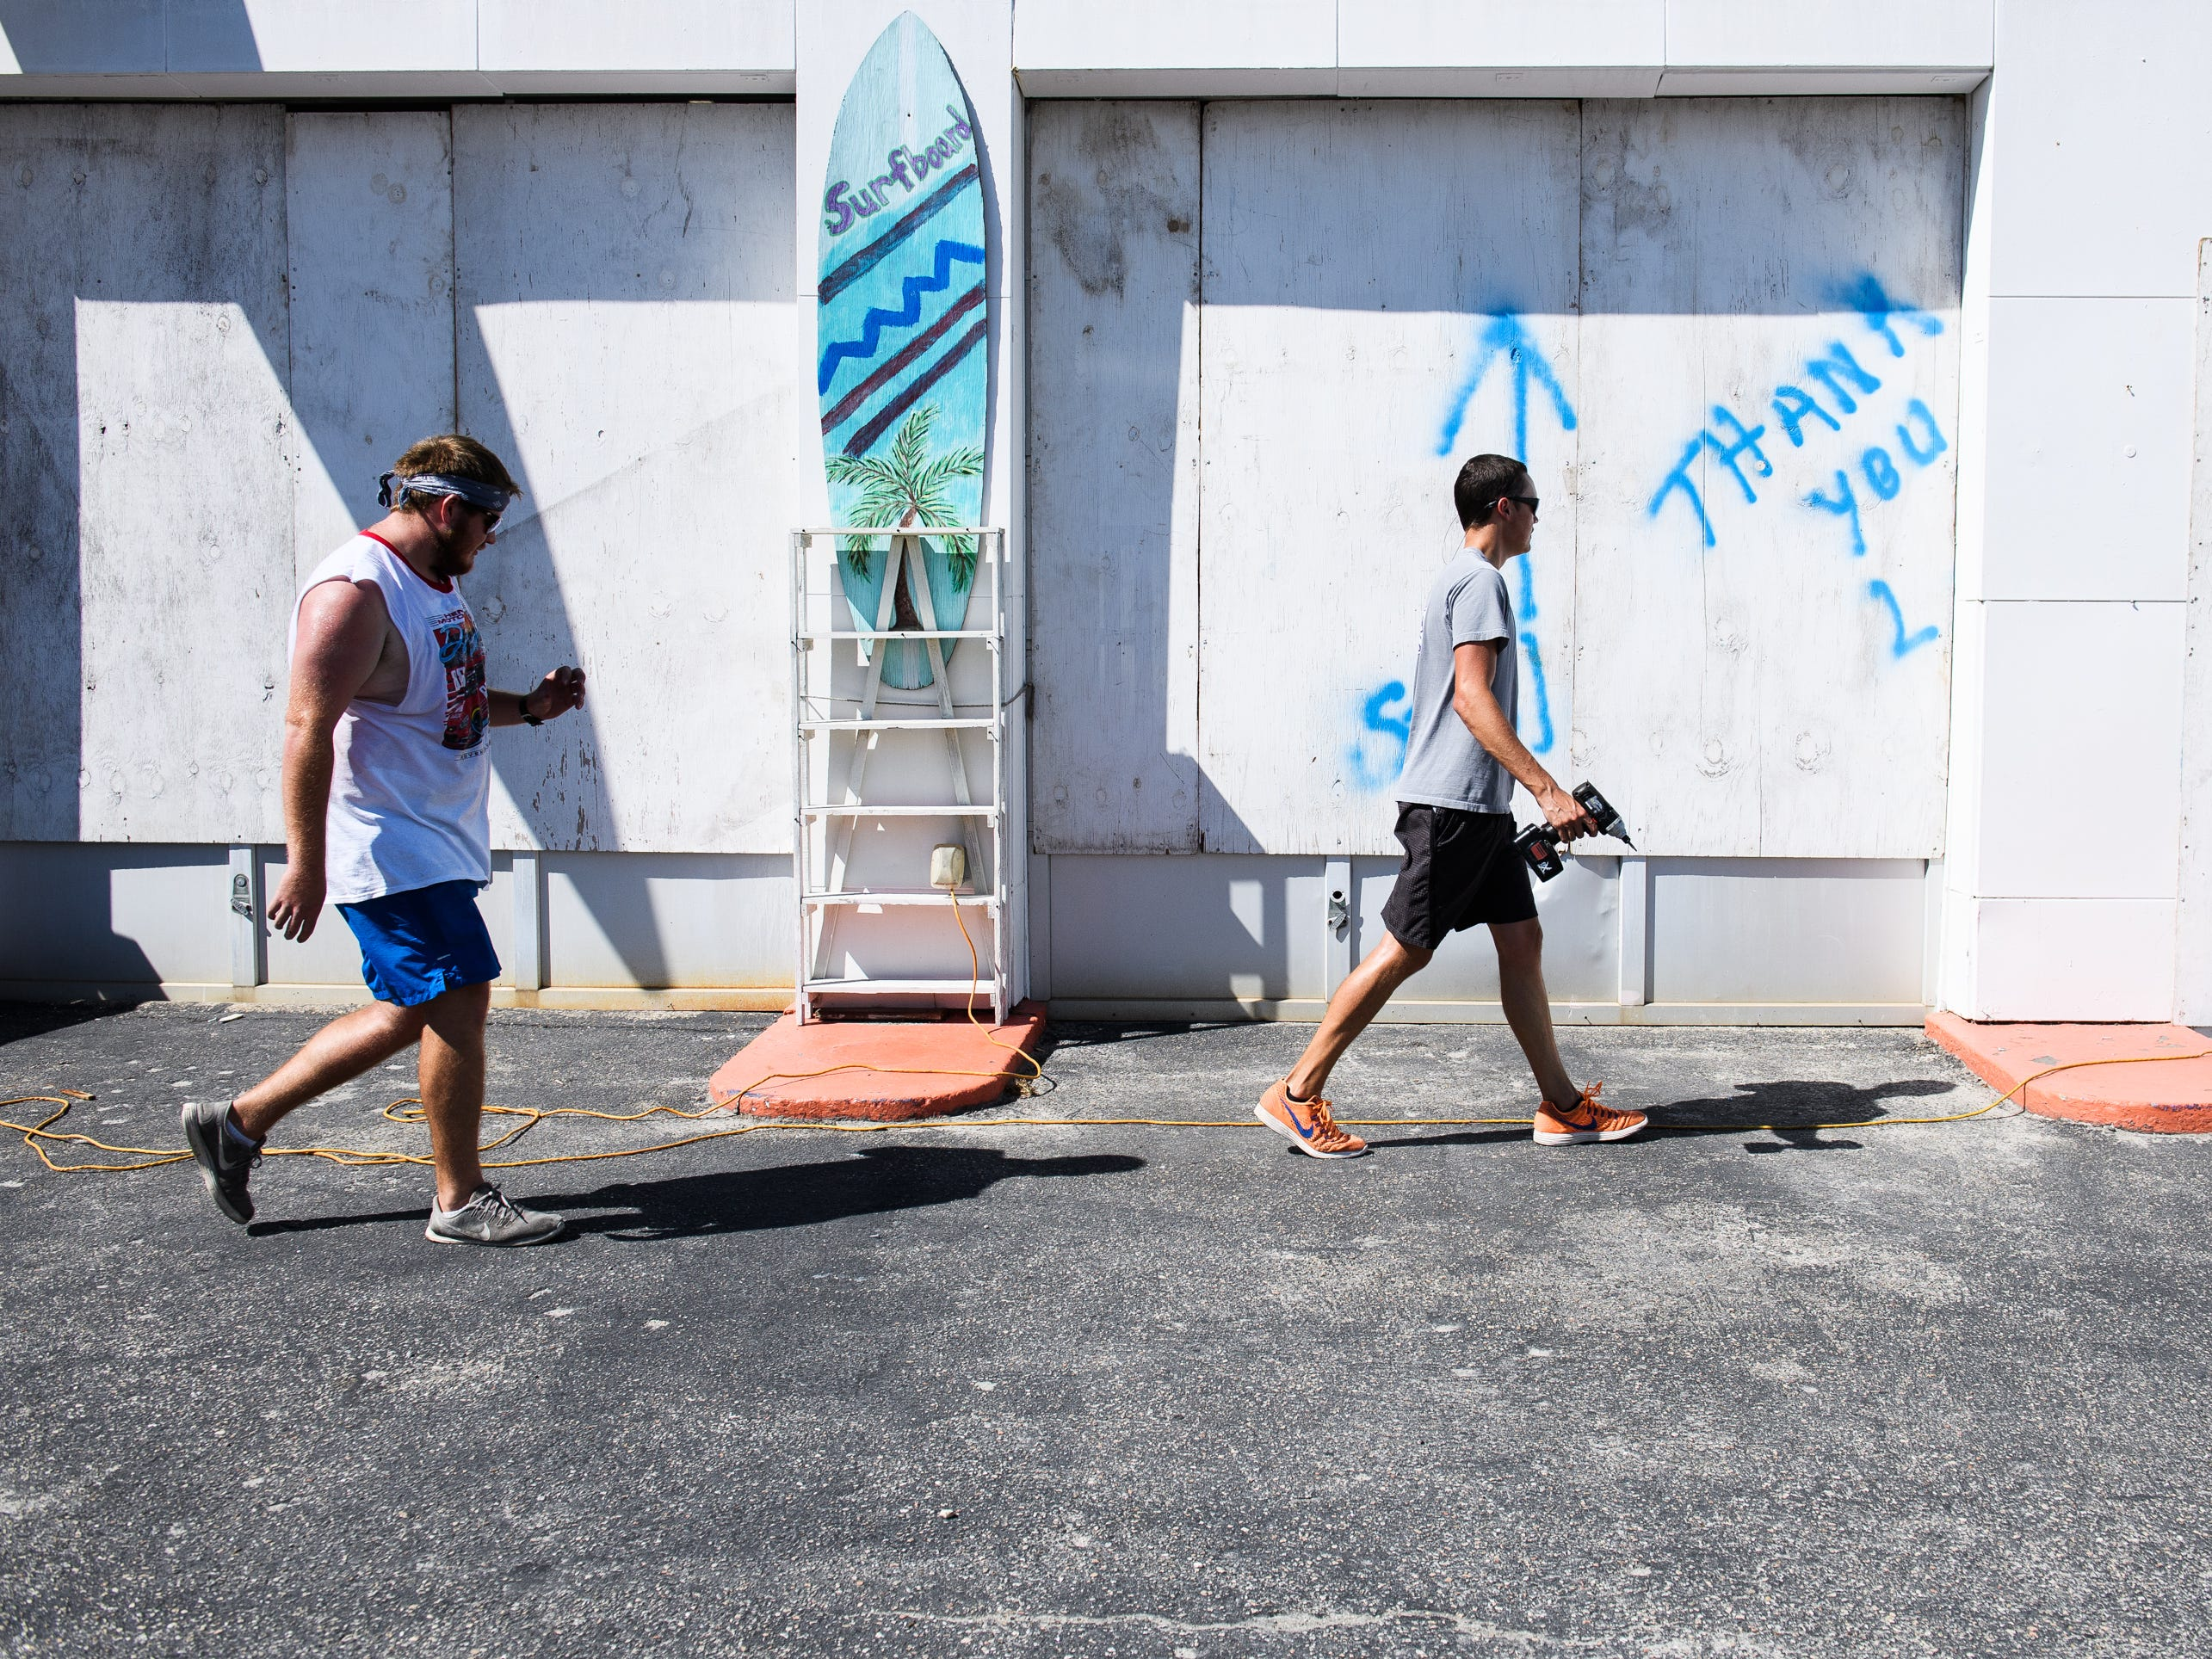 Hunter Cook and Austin Benton help their grandfather Tracy Berry board up his business, The Wildflower, in North Myrtle Beach on Tuesday, Sept. 11, 2018.